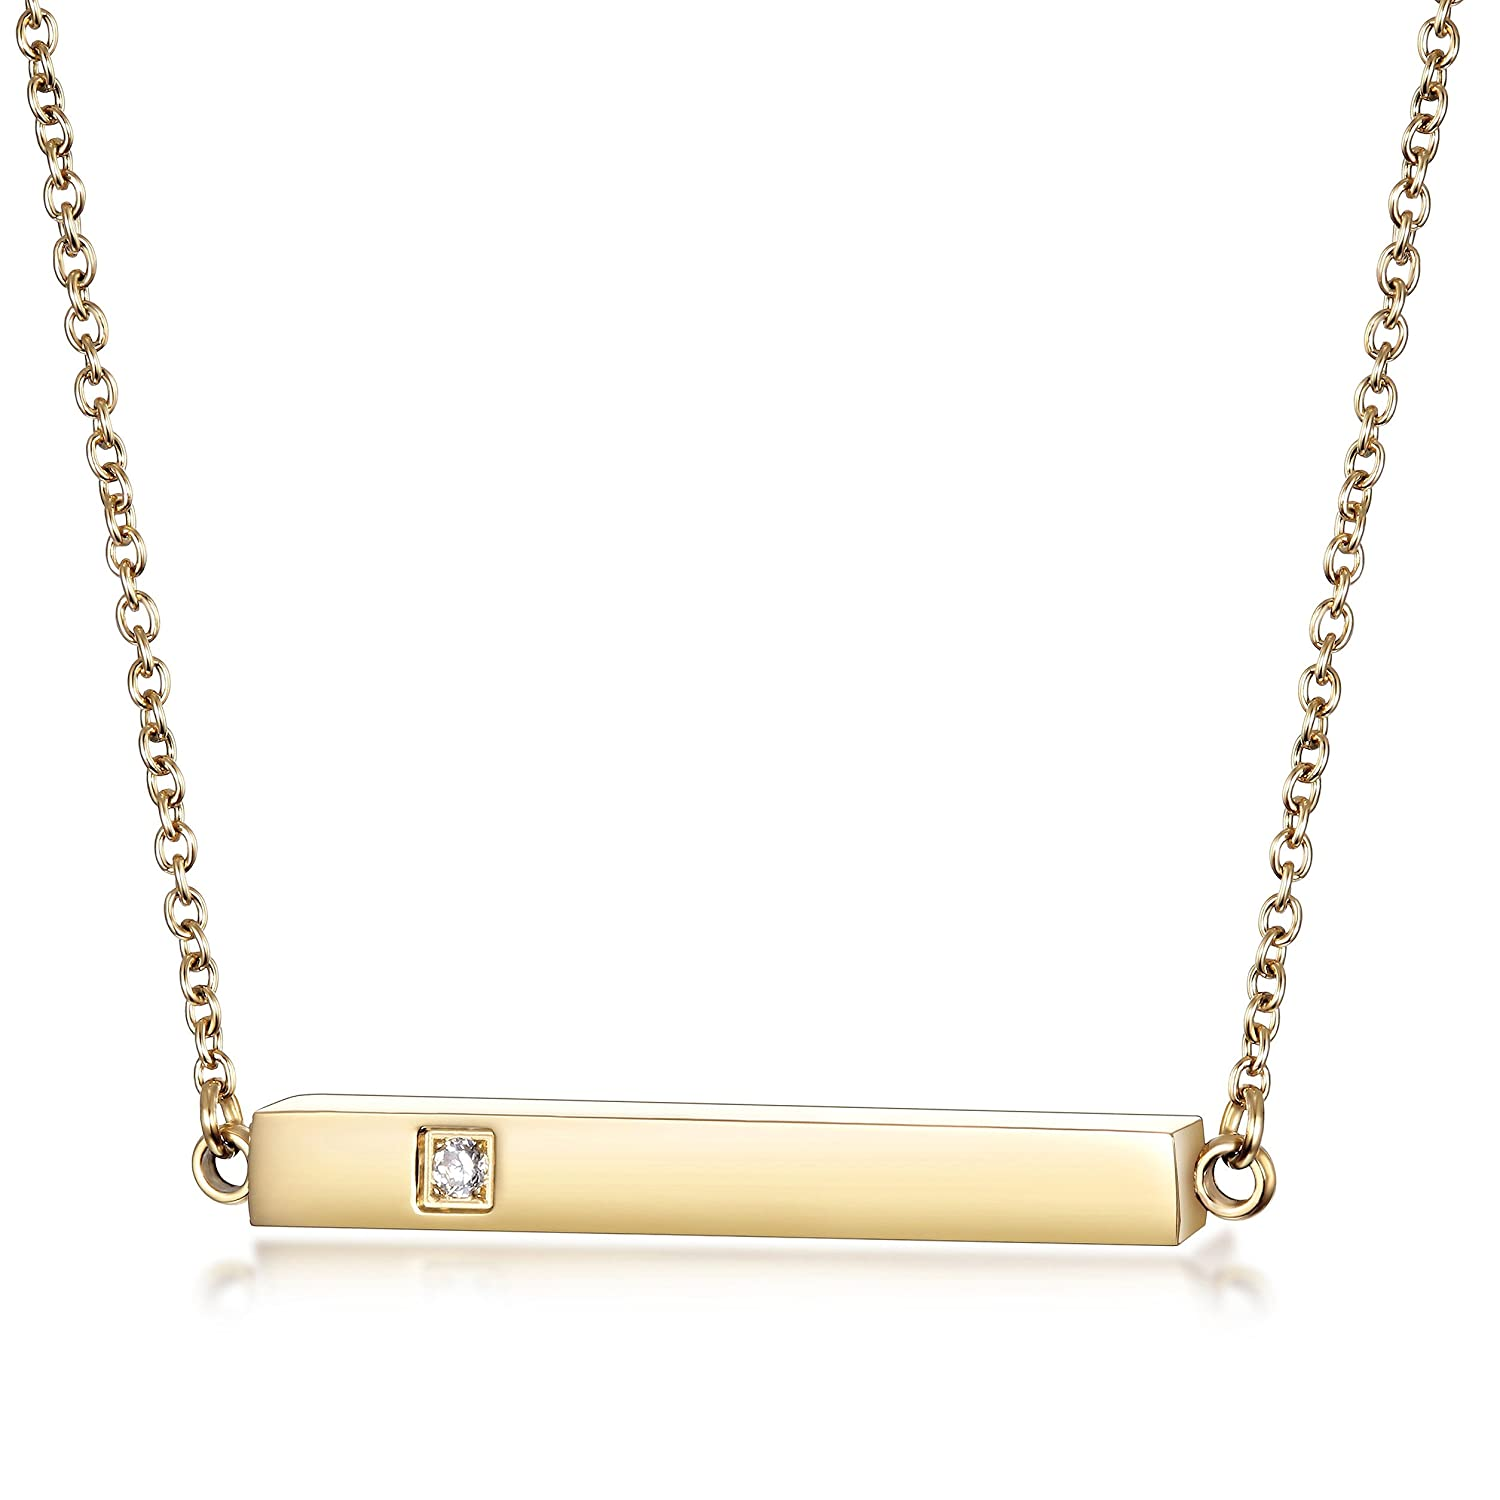 Wistic Bar Necklace Stainless Steel Gold Plated Adjustable with Engravable Bar Pendant(16Inch+2) gold pendant necklace